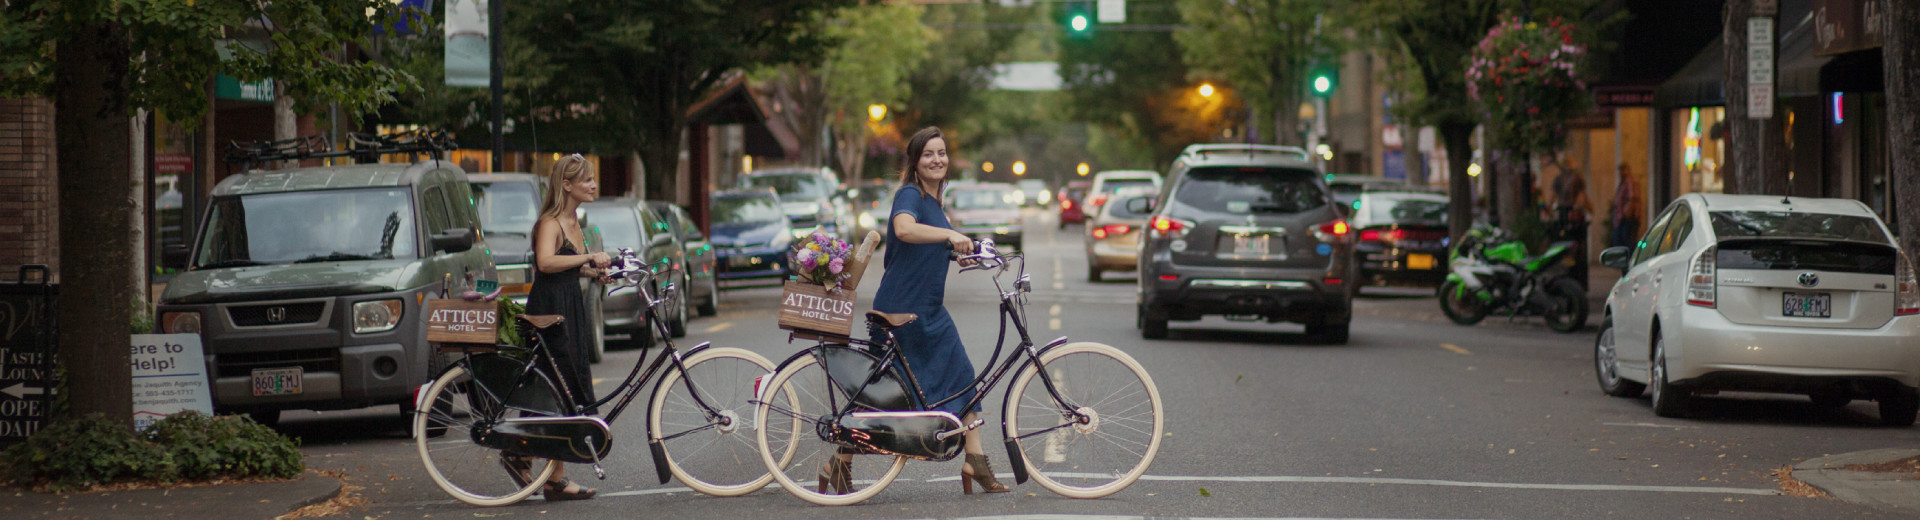 Atticus Hotel guests tour Historic Downtown McMinnville on Dutch style bicycles.